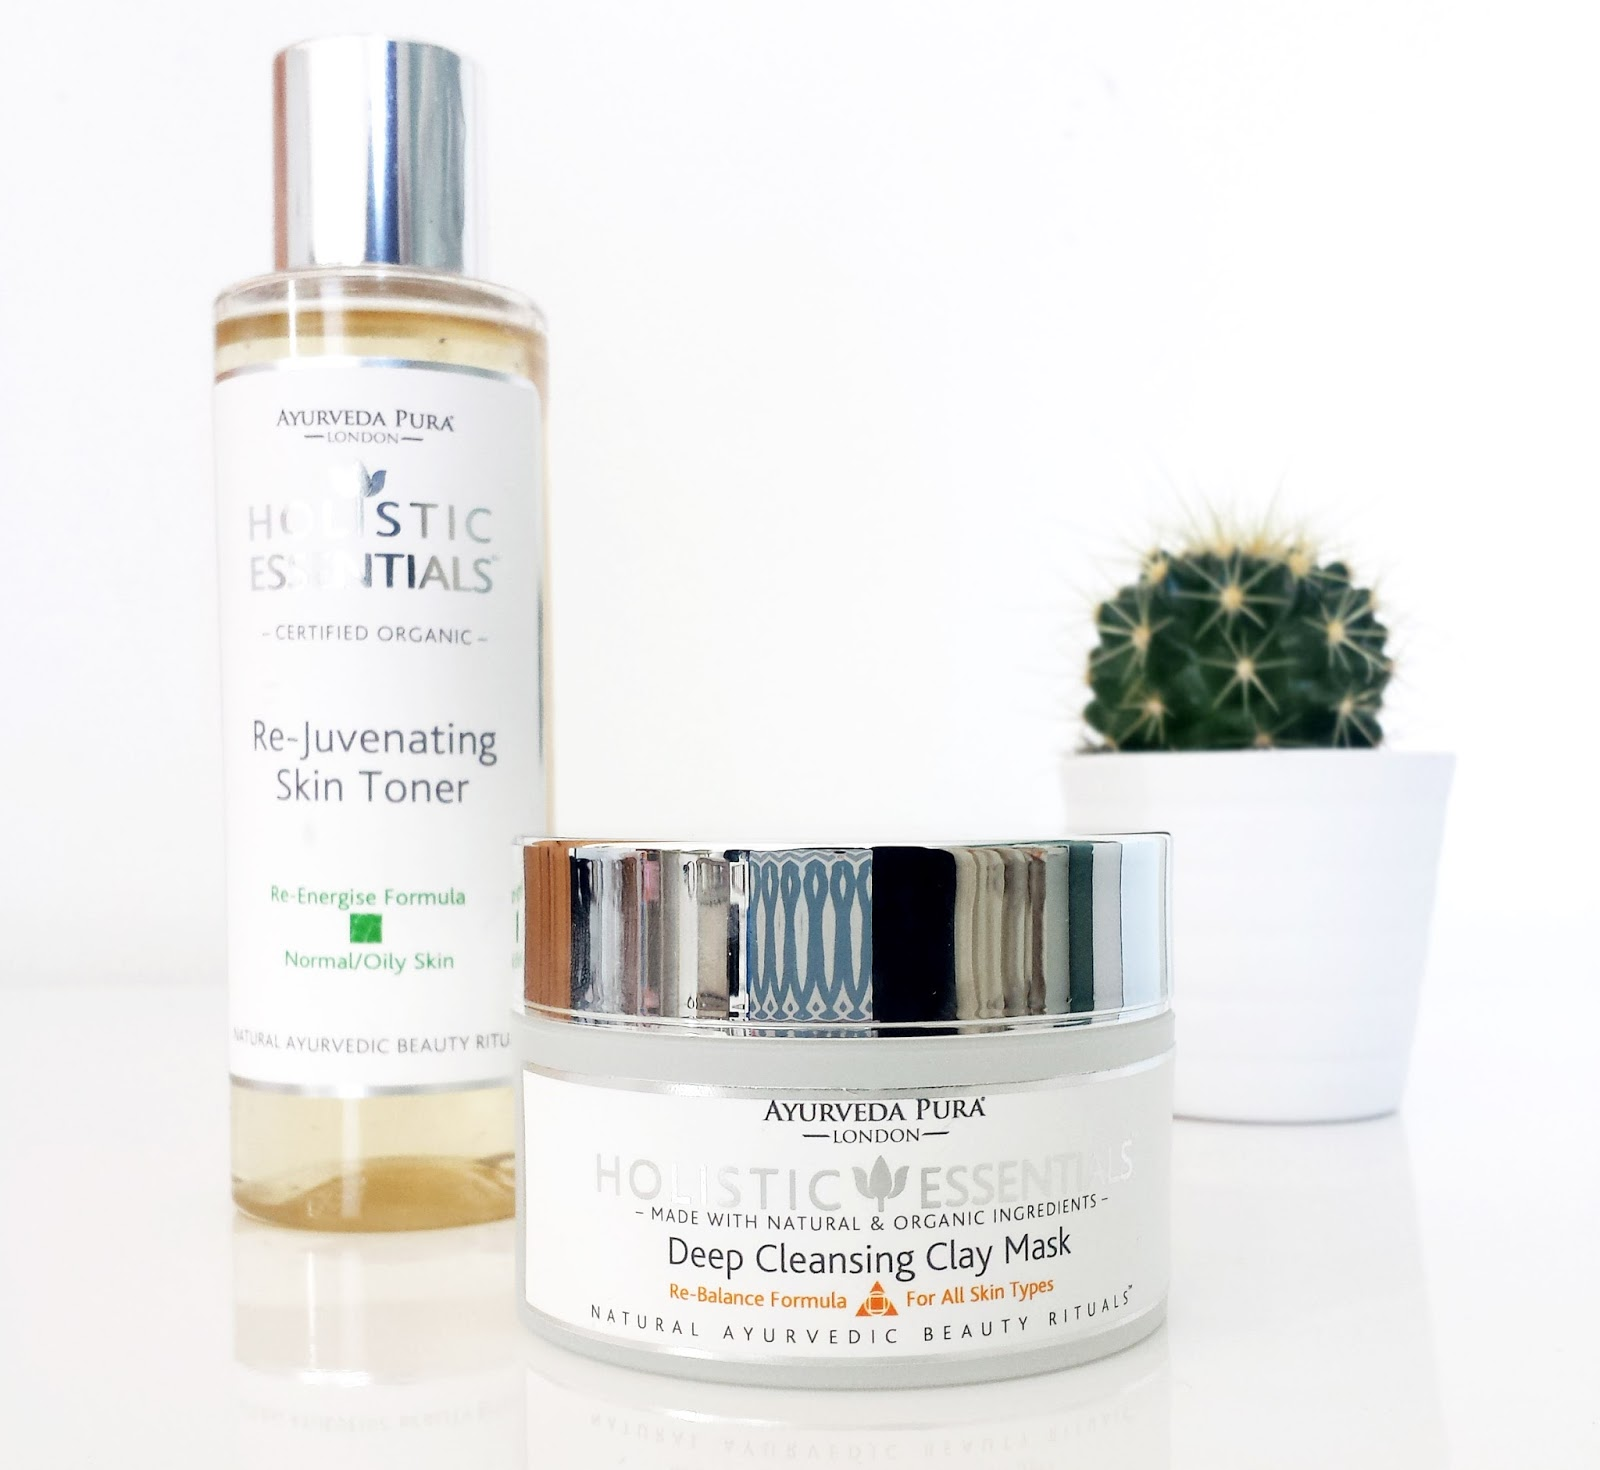 Ayurveda Pura London Hollistic Essentials